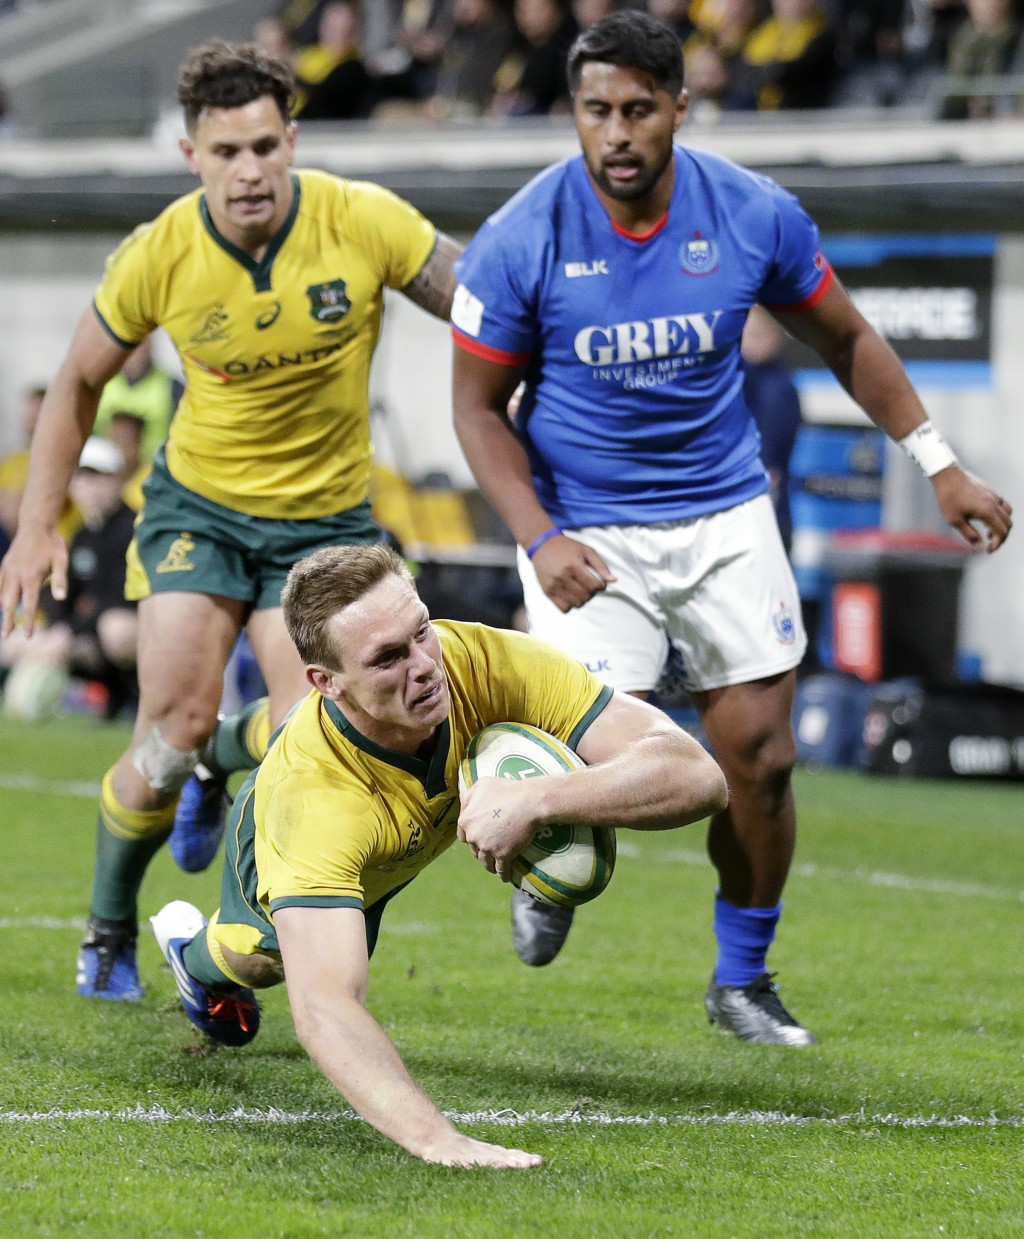 Australia's Dane Haylett-Petty, bottom, dives over to score a try against Samoa during their rugby union test match in Sydney, Saturday, Sept. 7, 2019...